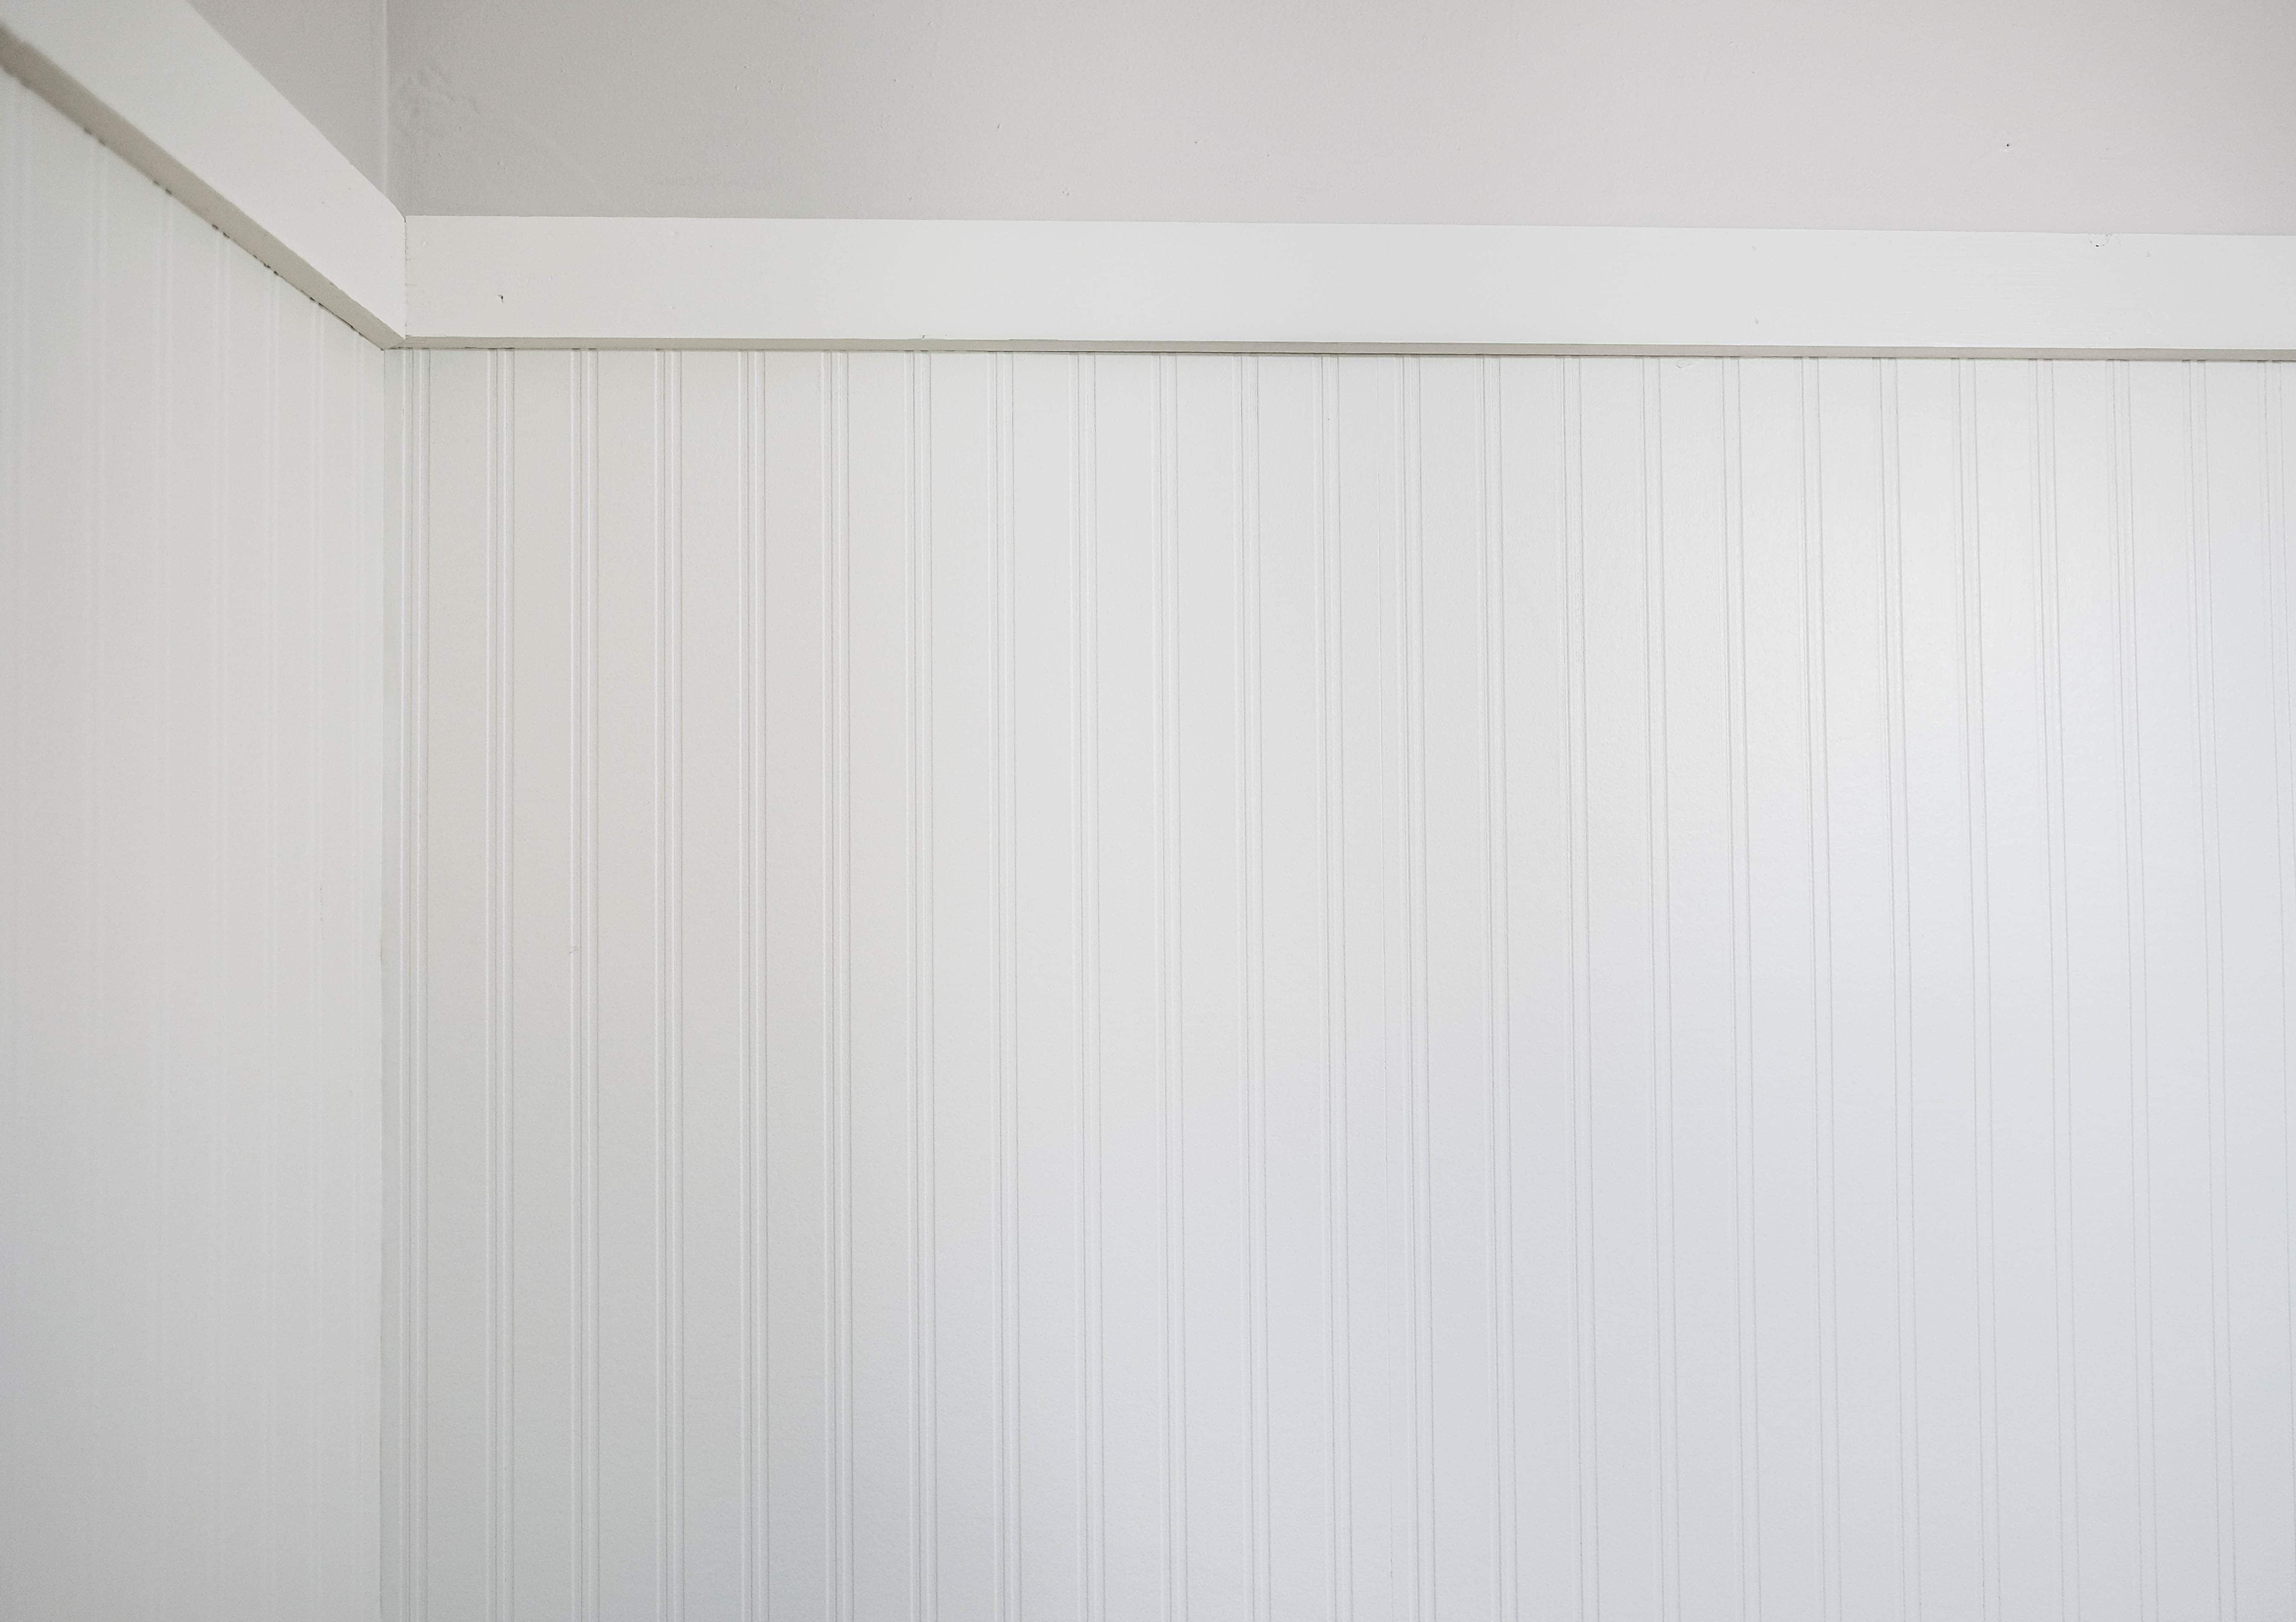 White beadboard wallpaper against light grey wall